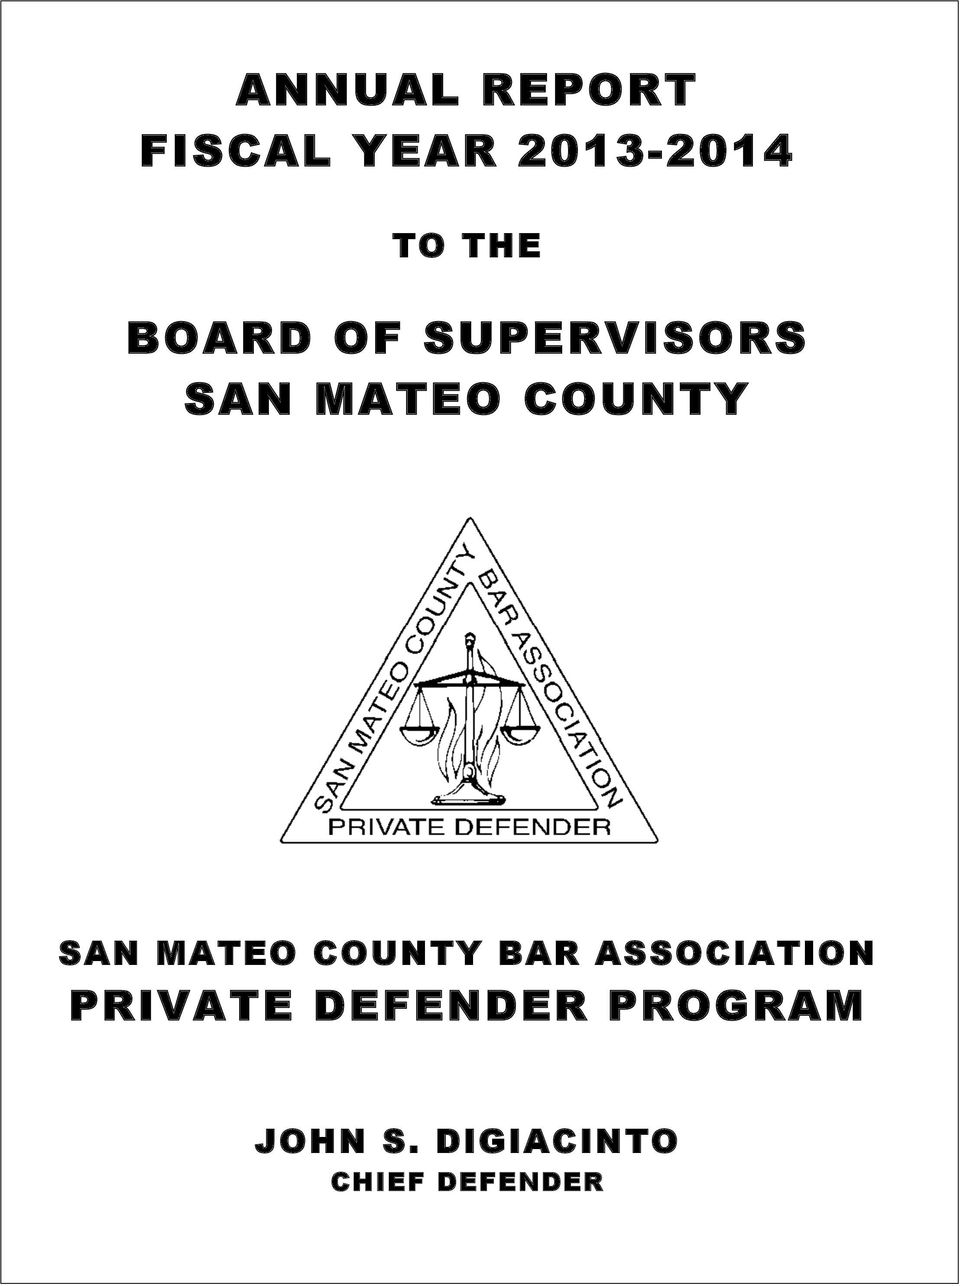 MATEO COUNTY BAR ASSOCIATION PRIVATE